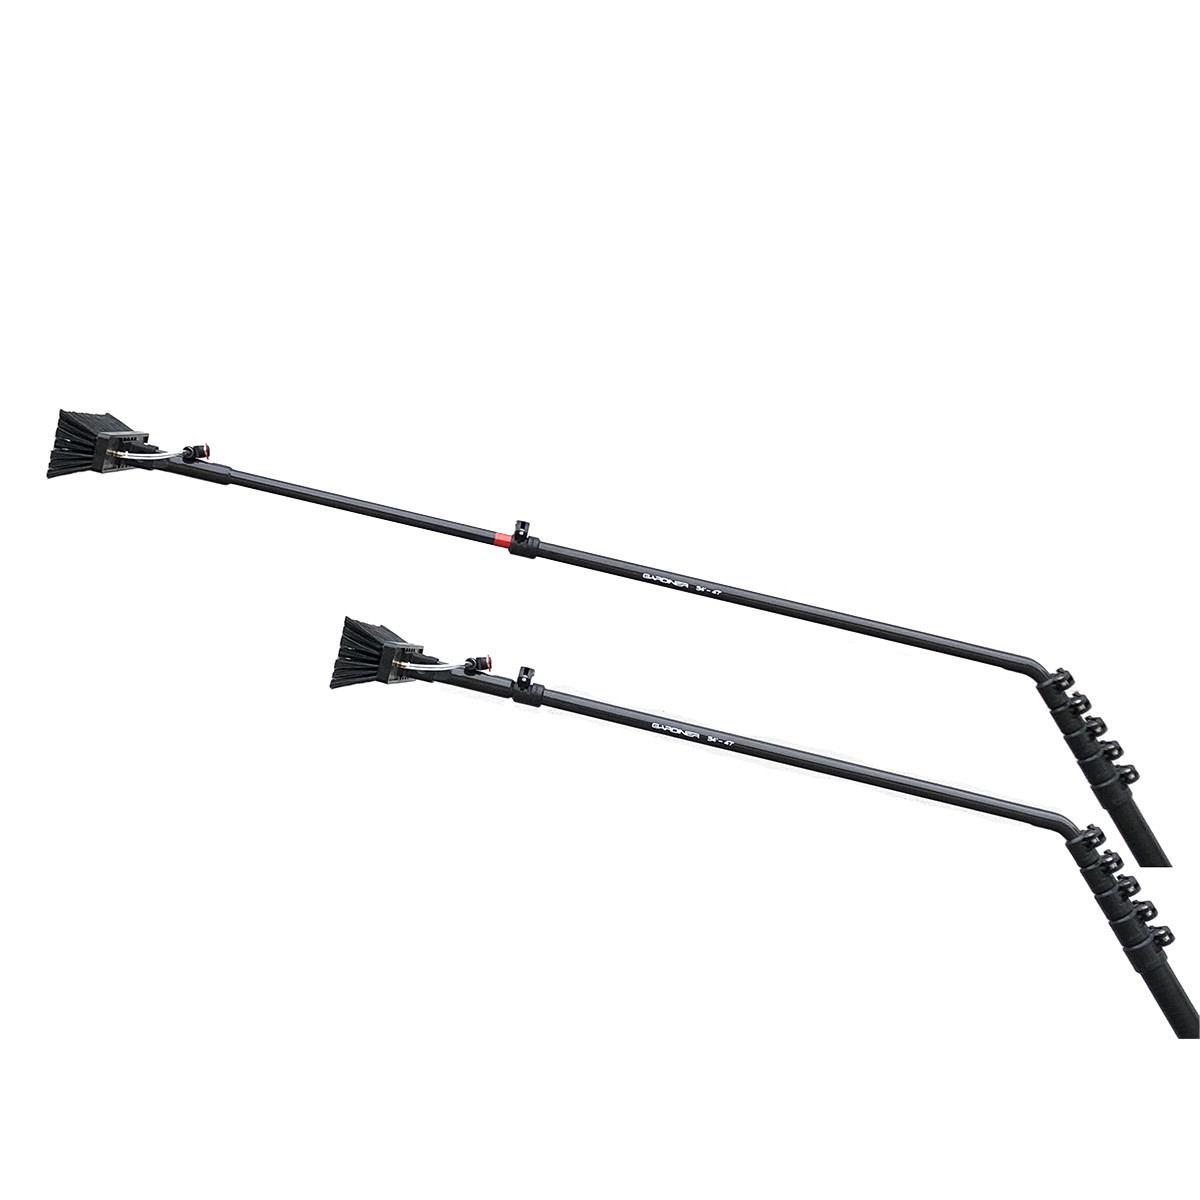 "QUICK-LOQ TELESCOPIC DEEP REACH CARBON FIBRE GOOSENECK 35"" - 47"""